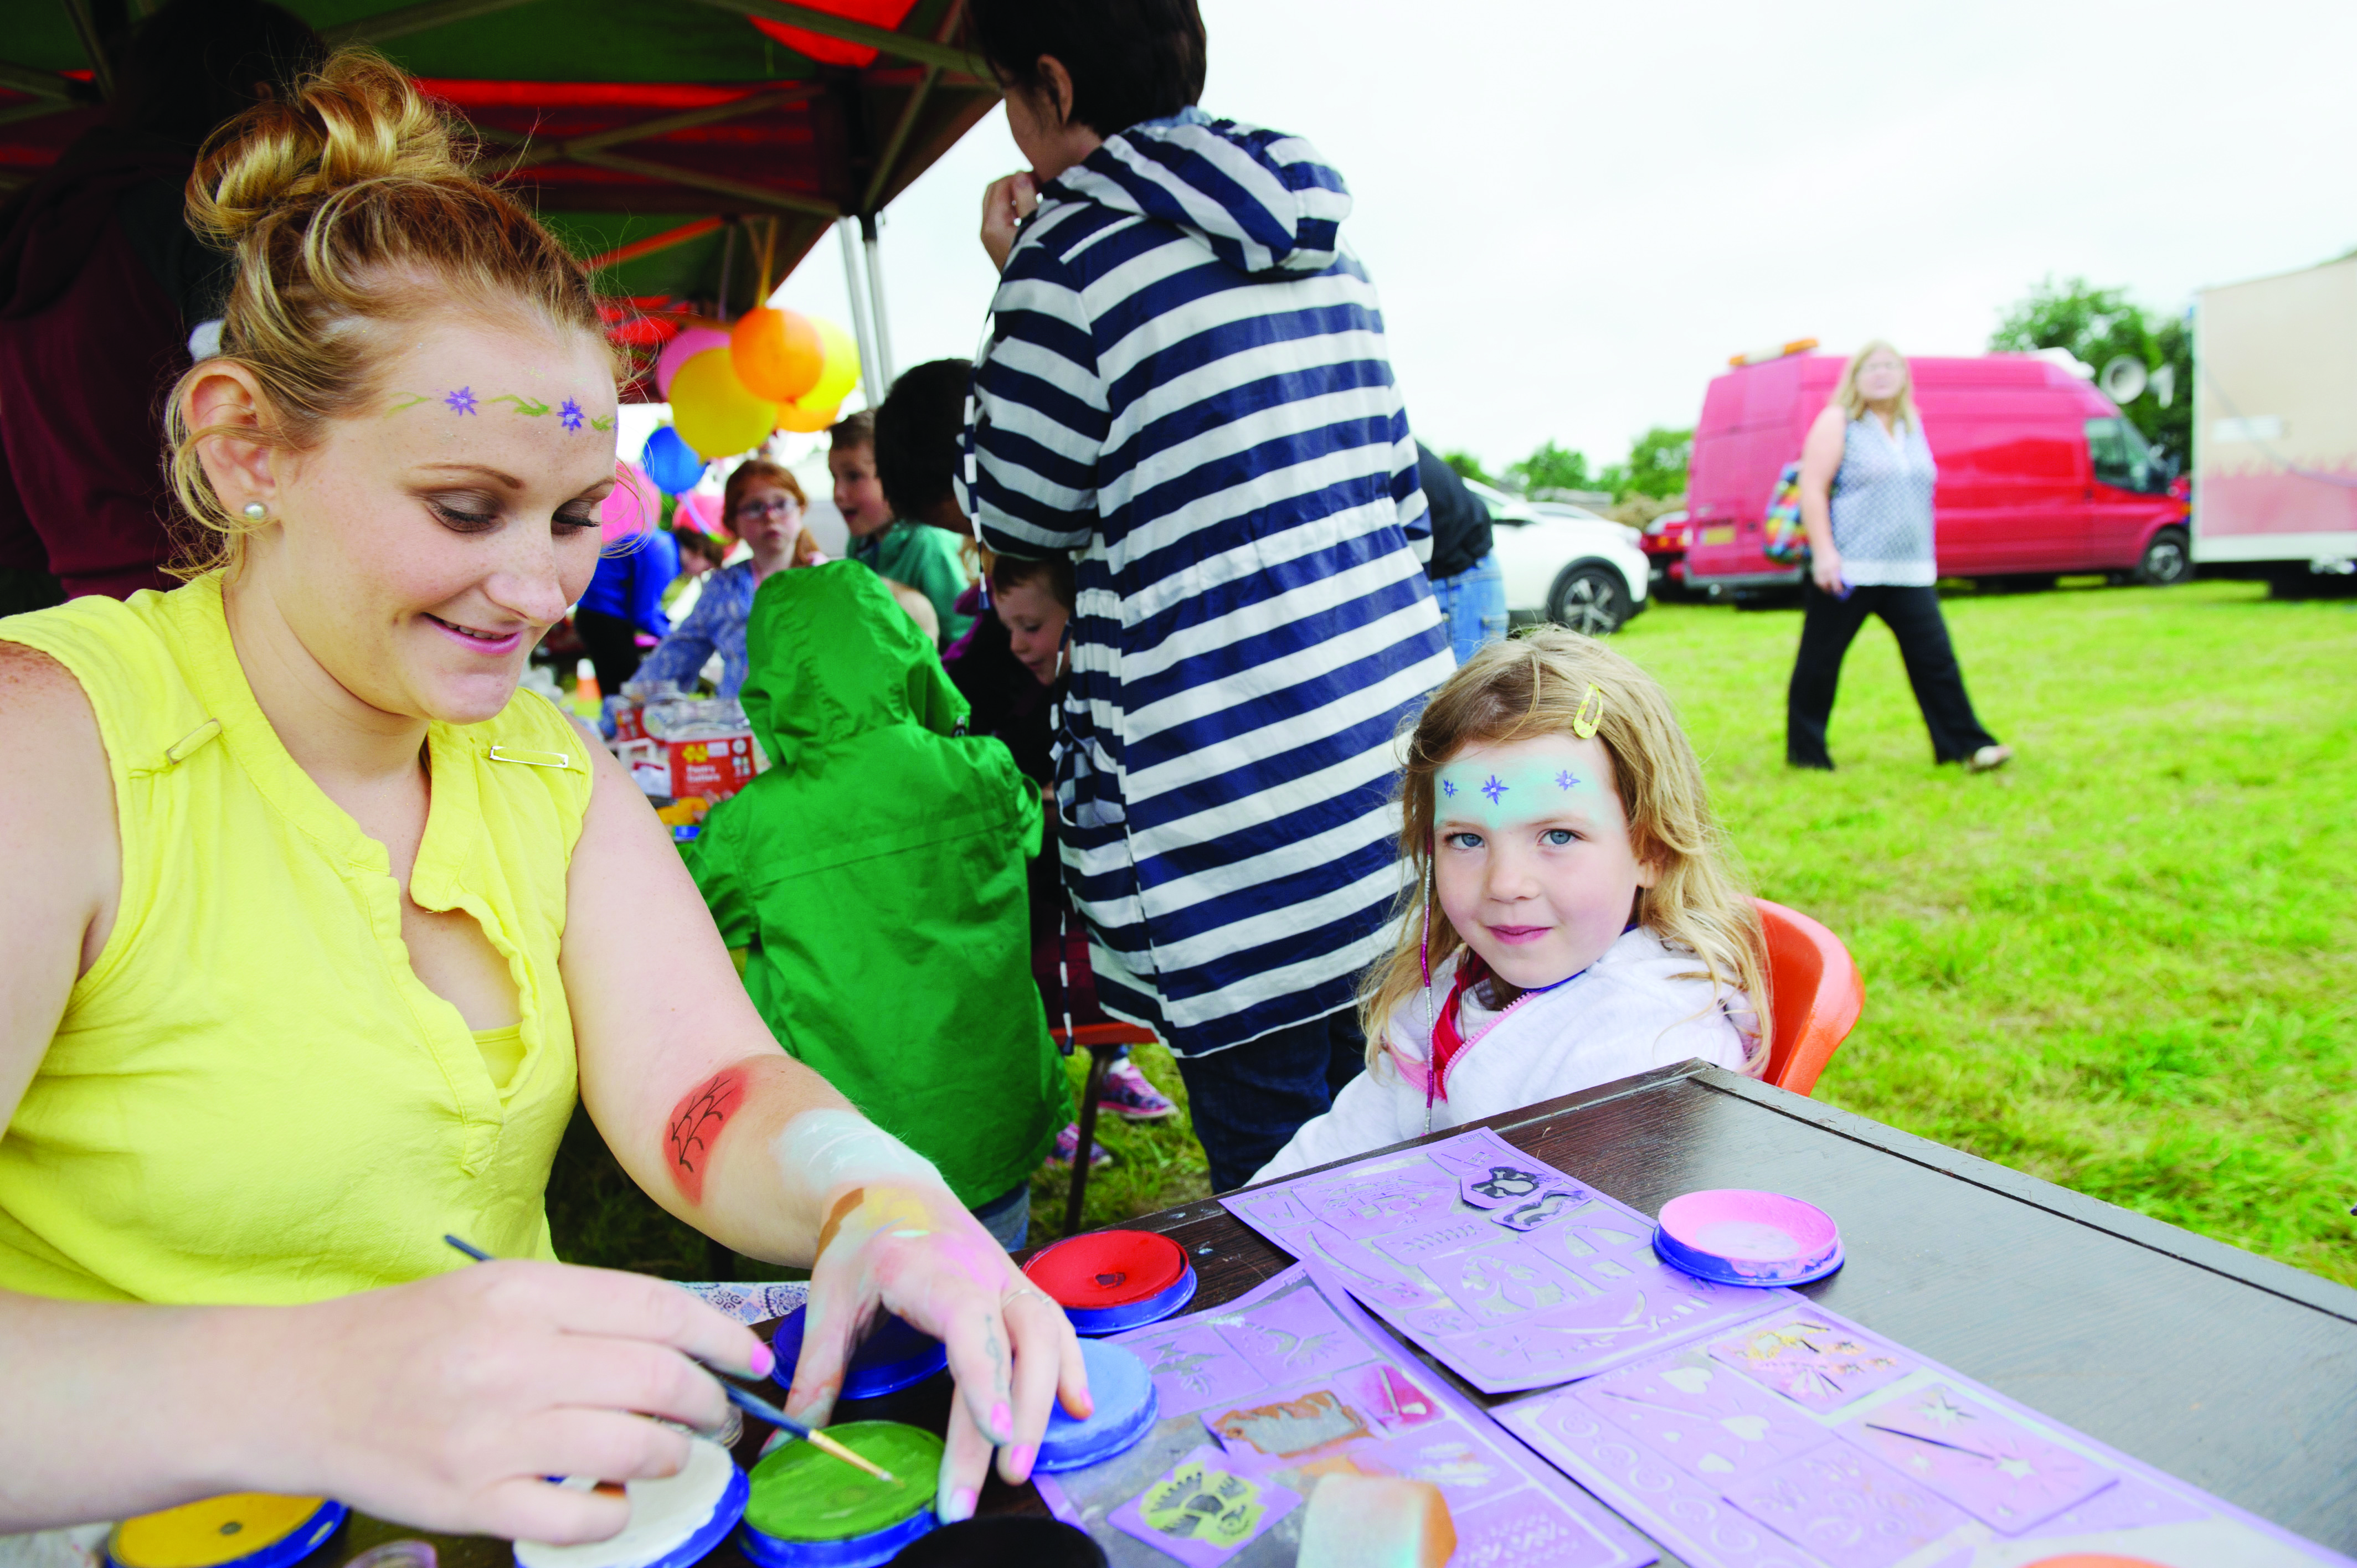 Maisie Skinnedar getting her face painted by Daytona at the Carrickroe Welcome Home Festival. ©Rory Geary/The Northern Standard